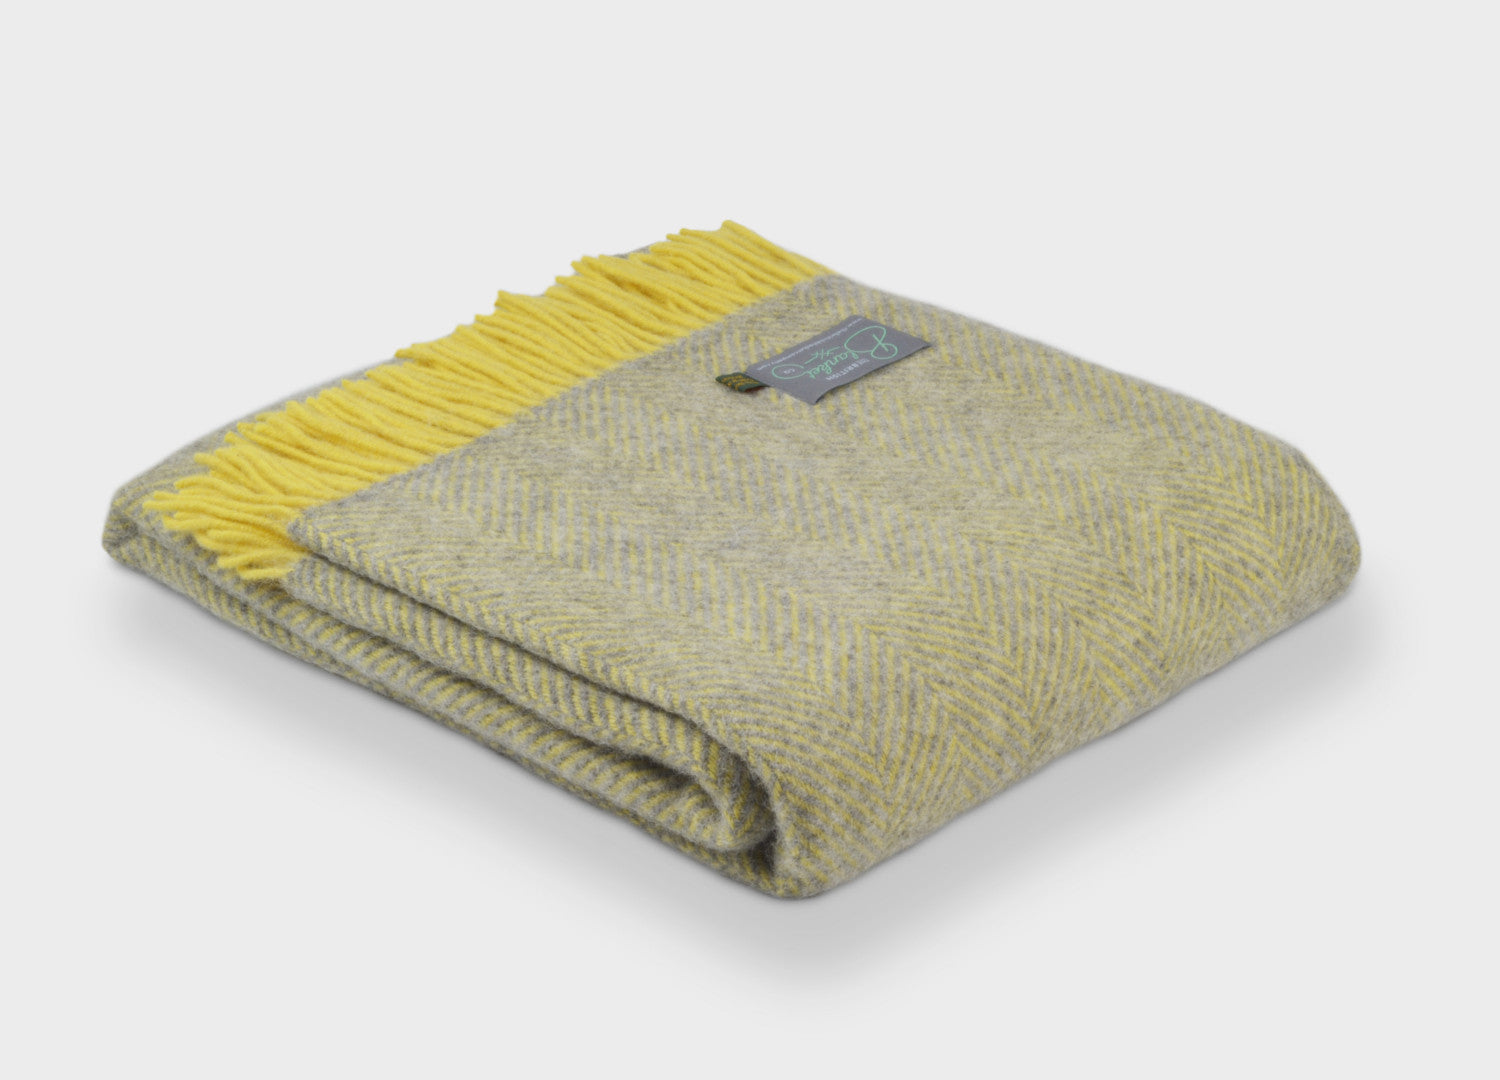 Grey and Lemon Yellow Herringbone Throw - buy at The British Blanket Company 866c4073f